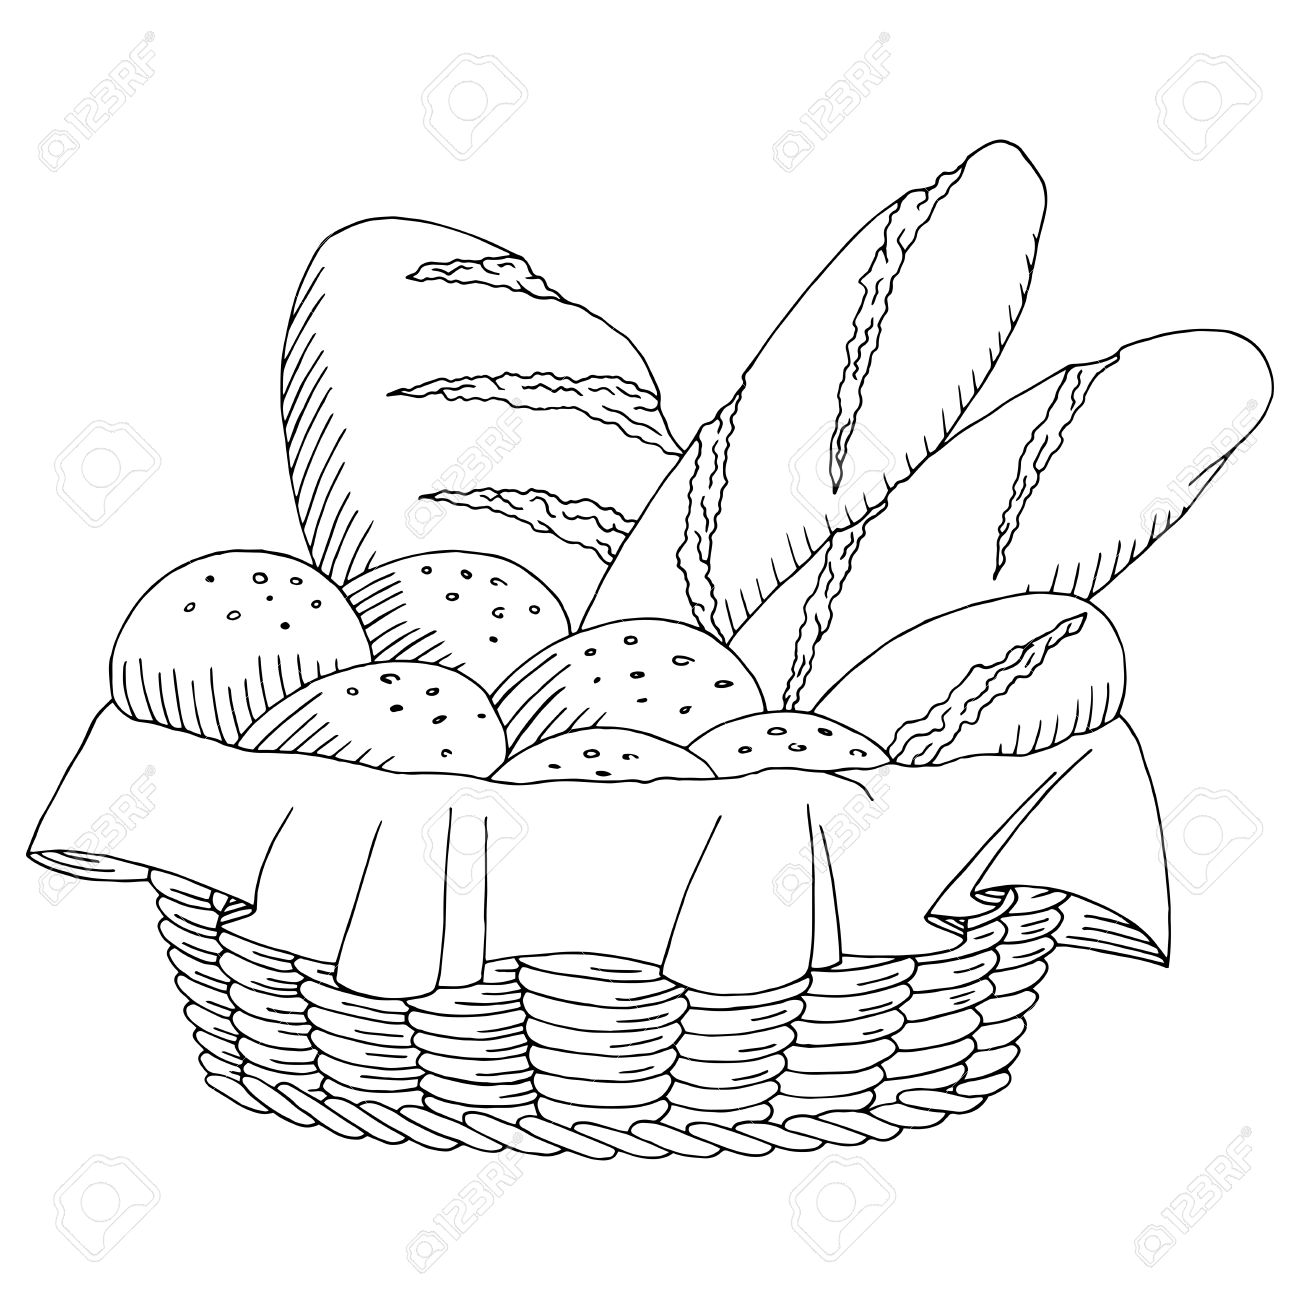 1300x1300 Bread Basket Food Graphic Art Black White Isolated Sketch